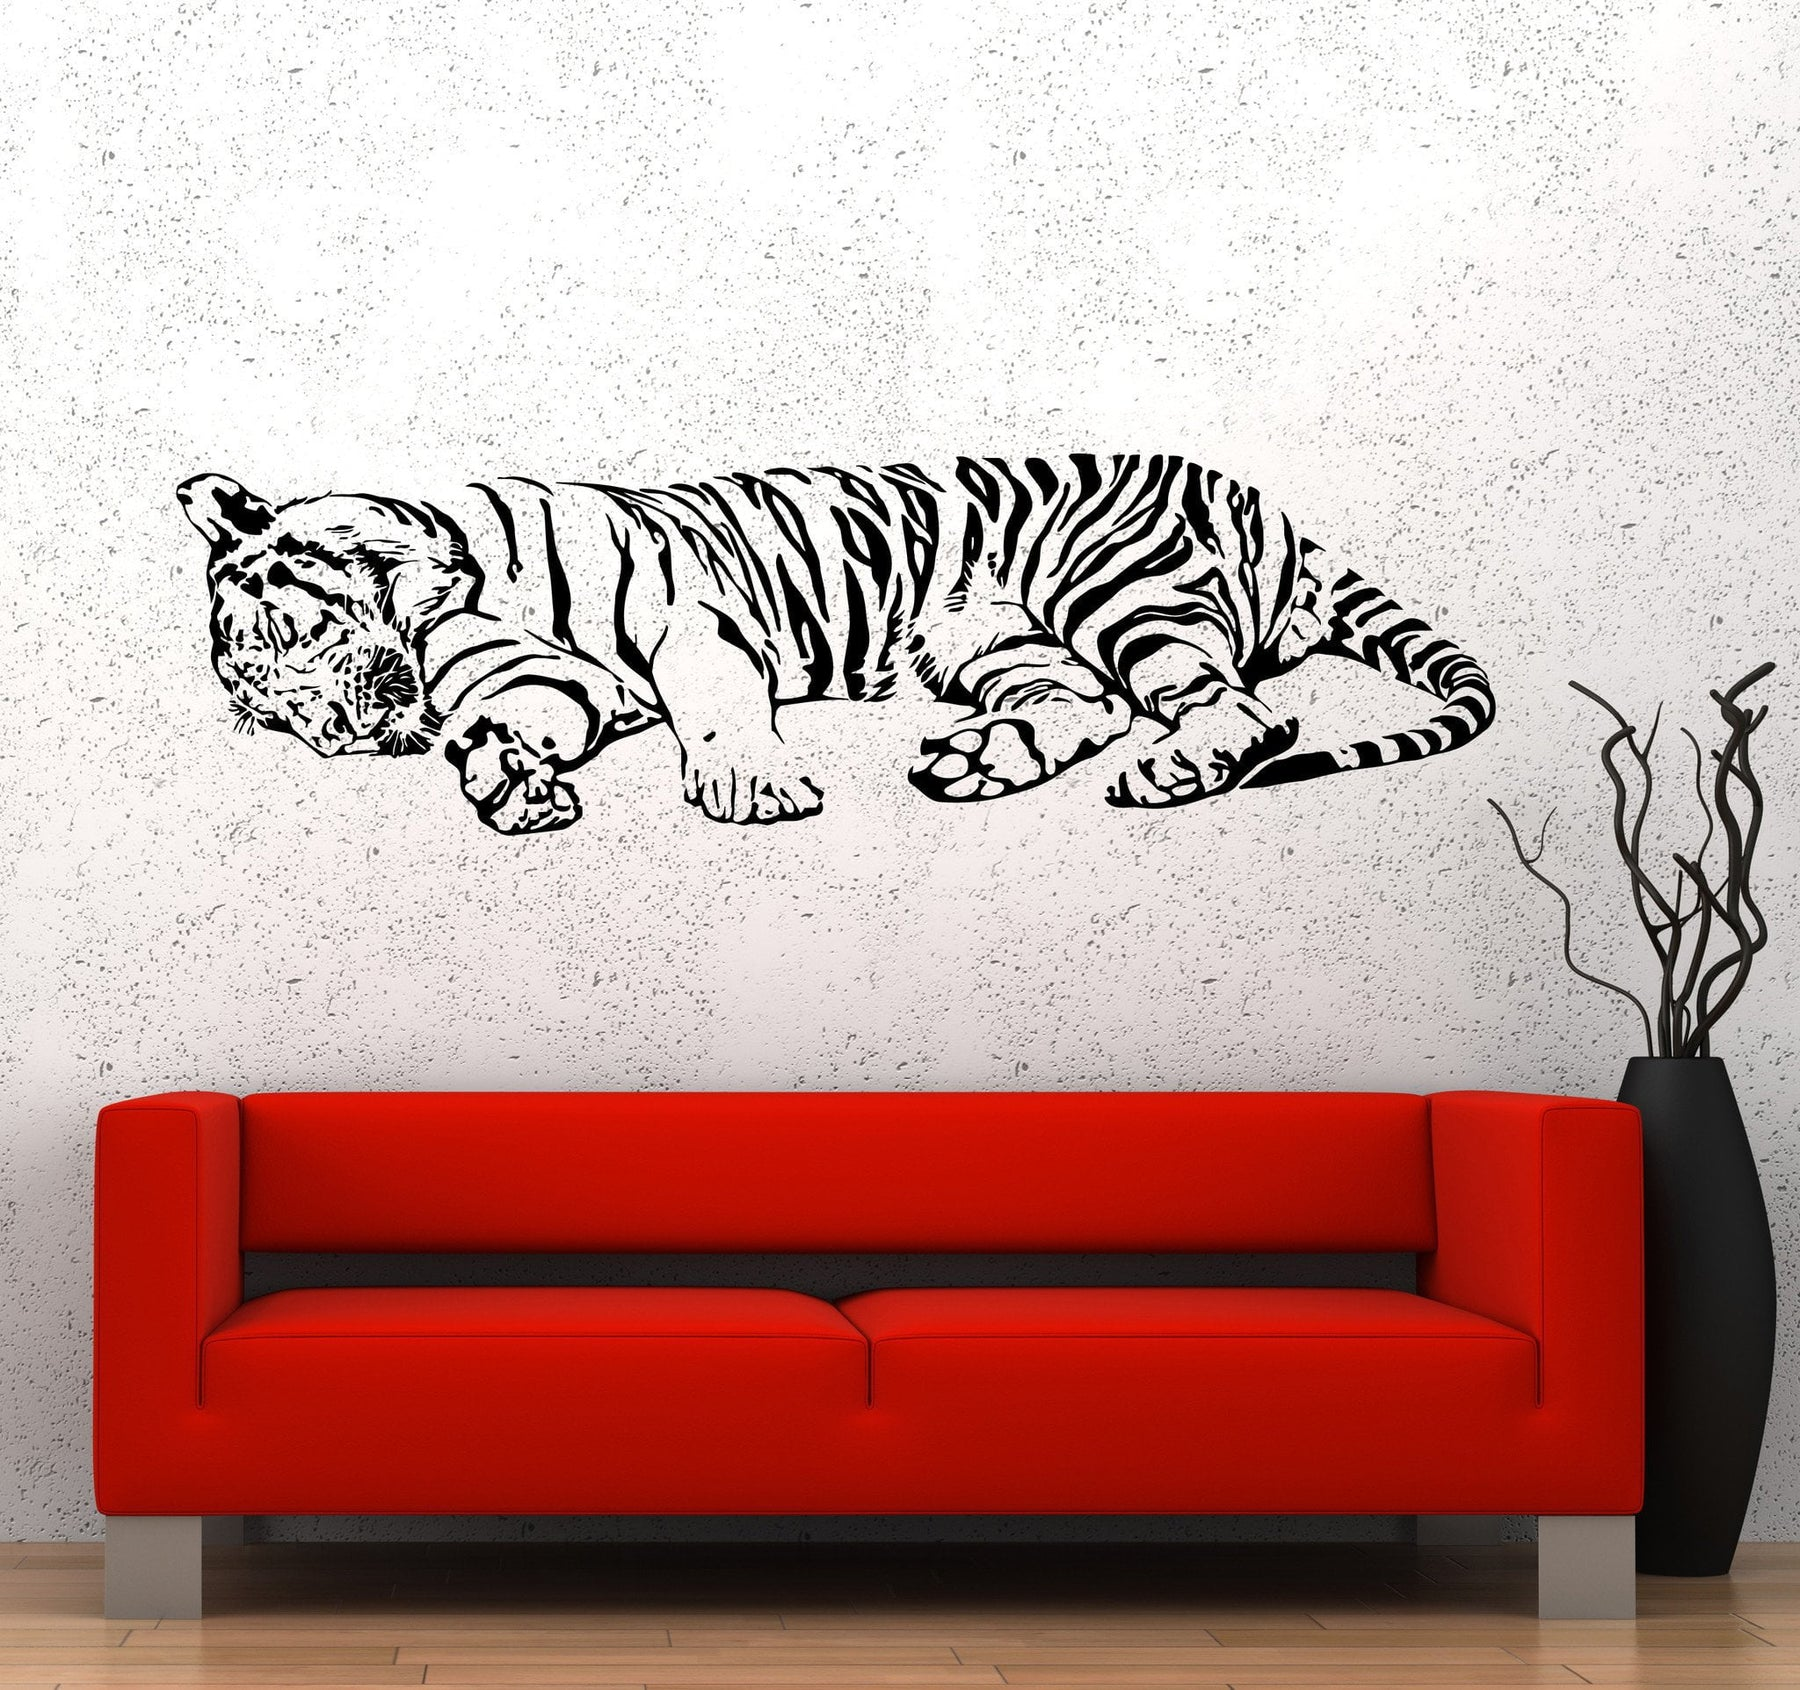 Wall Vinyl Decal Tiger Sleeping Jungle Africa Predator Cool Interior Decor Unique Gift z3652